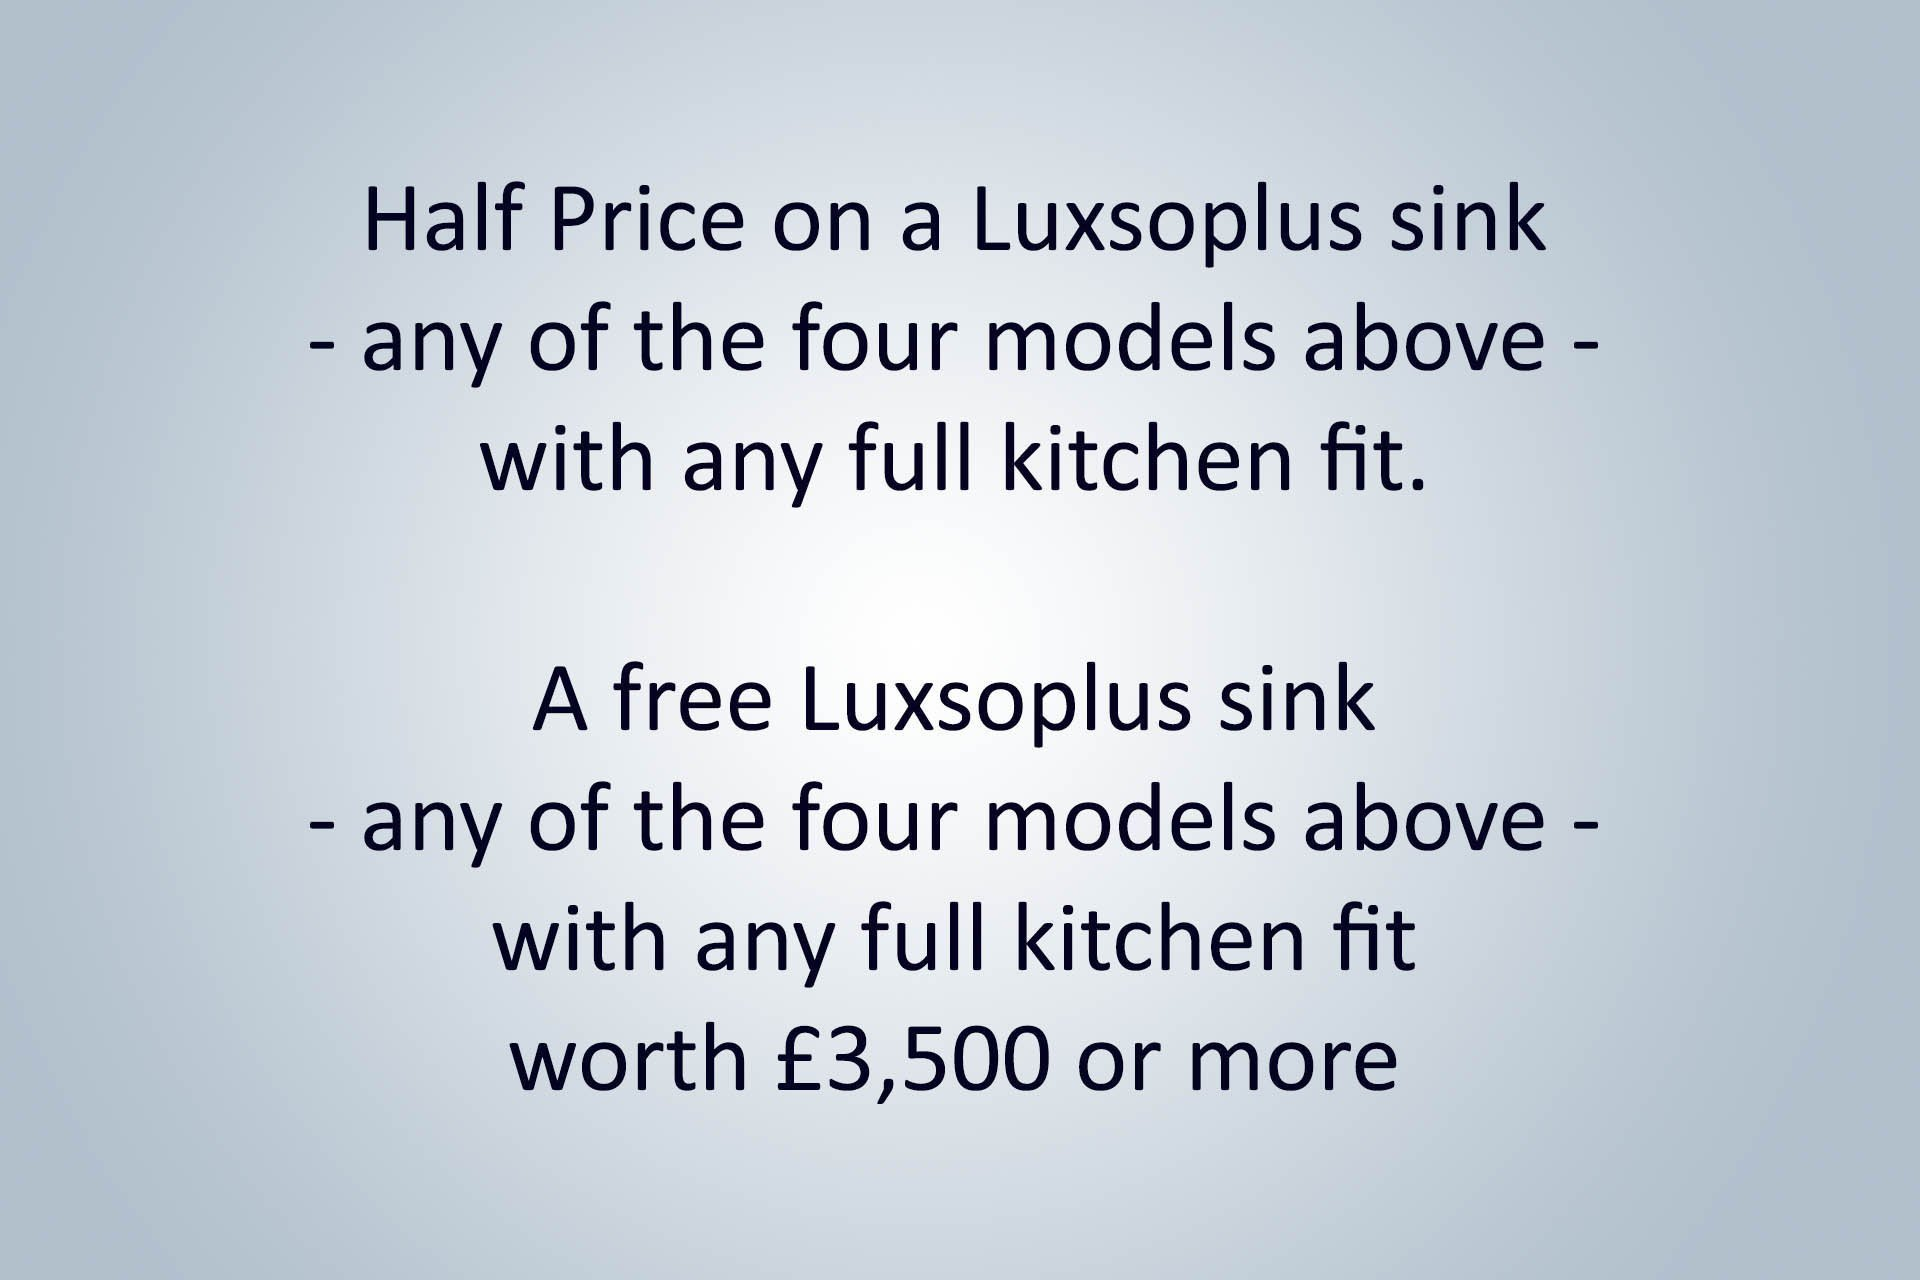 1810 Company Luxsoplus 500 granite worktops surrey brett you have no integrity 093044